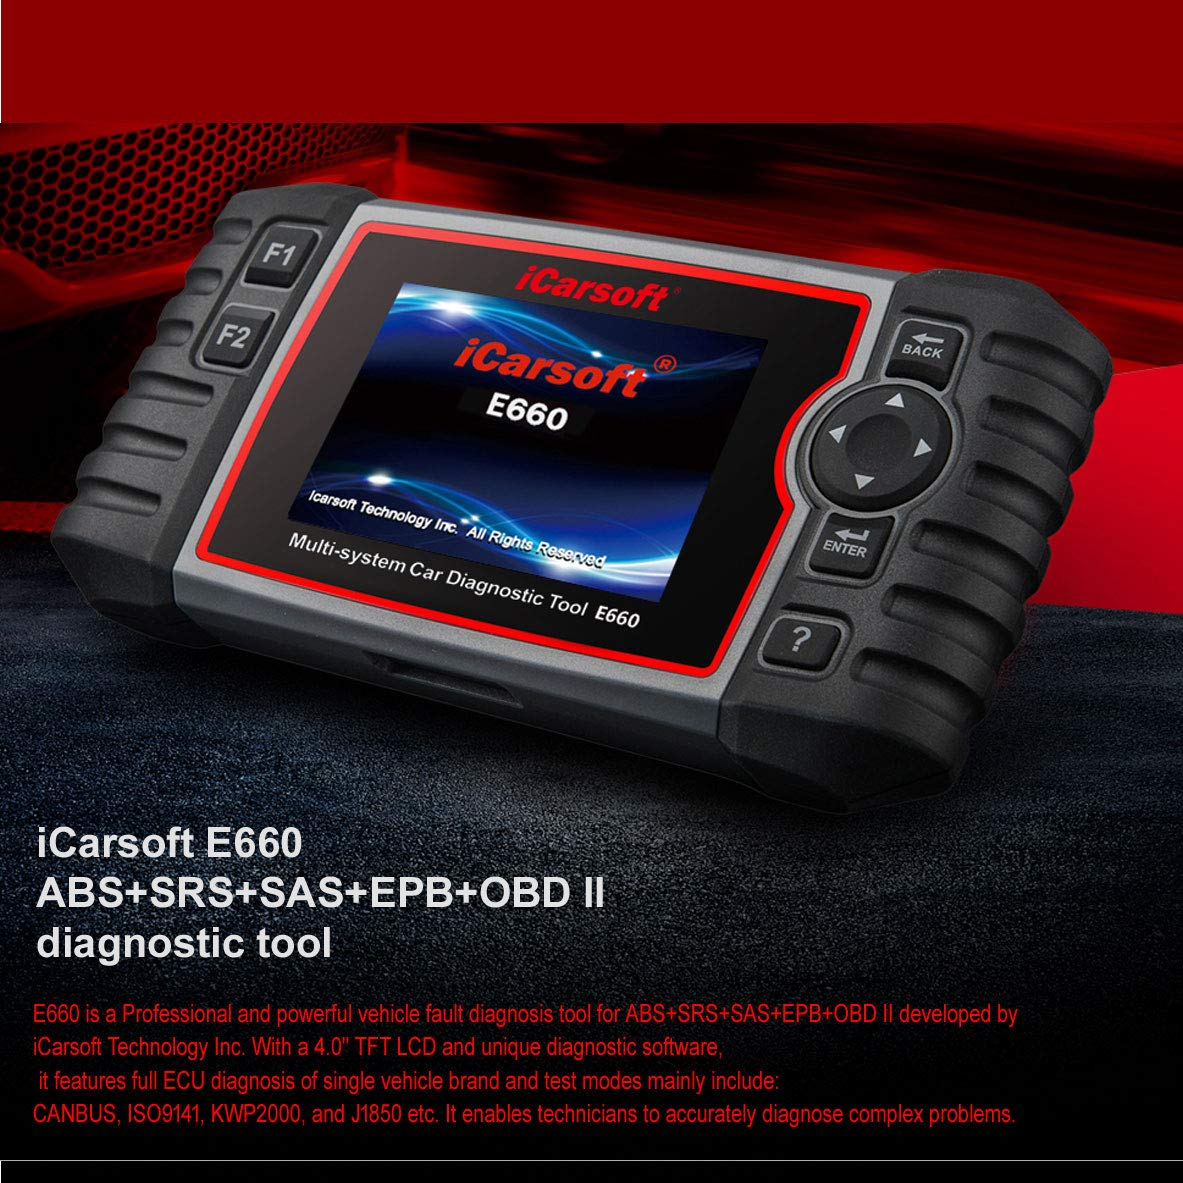 iCarsoft E660 ABS+SRS+SAS+EPB+OBD II Diagnostic Tool by iCarsoft (Image #7)